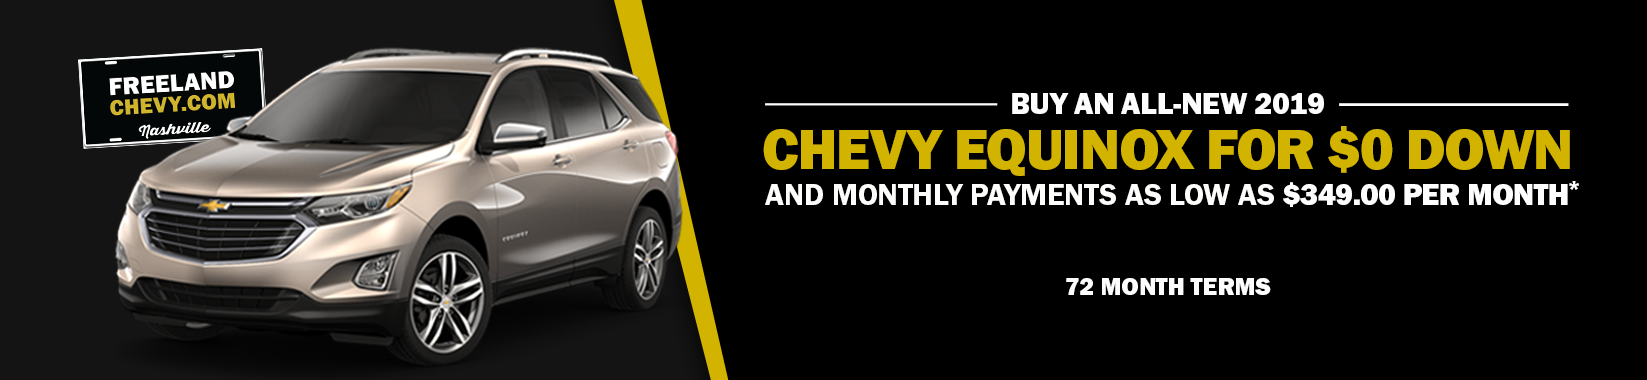 Buy an all-new 2019 Chevrolet Equinox for $0 down and monthly payments as low as $349.00 per month!